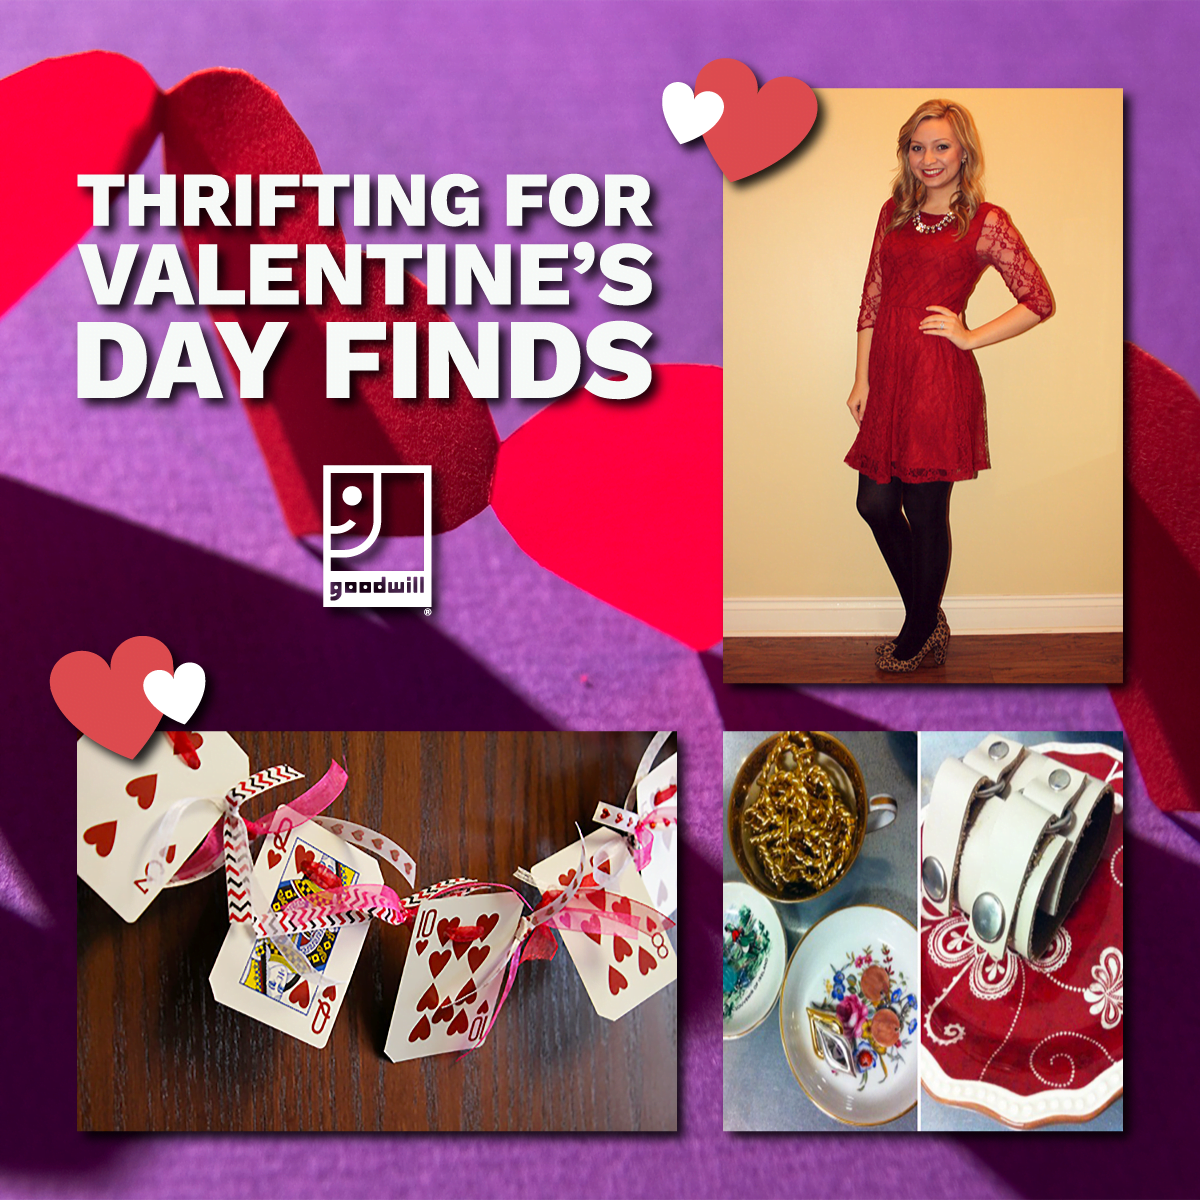 thrifting for valentine's day finds blog